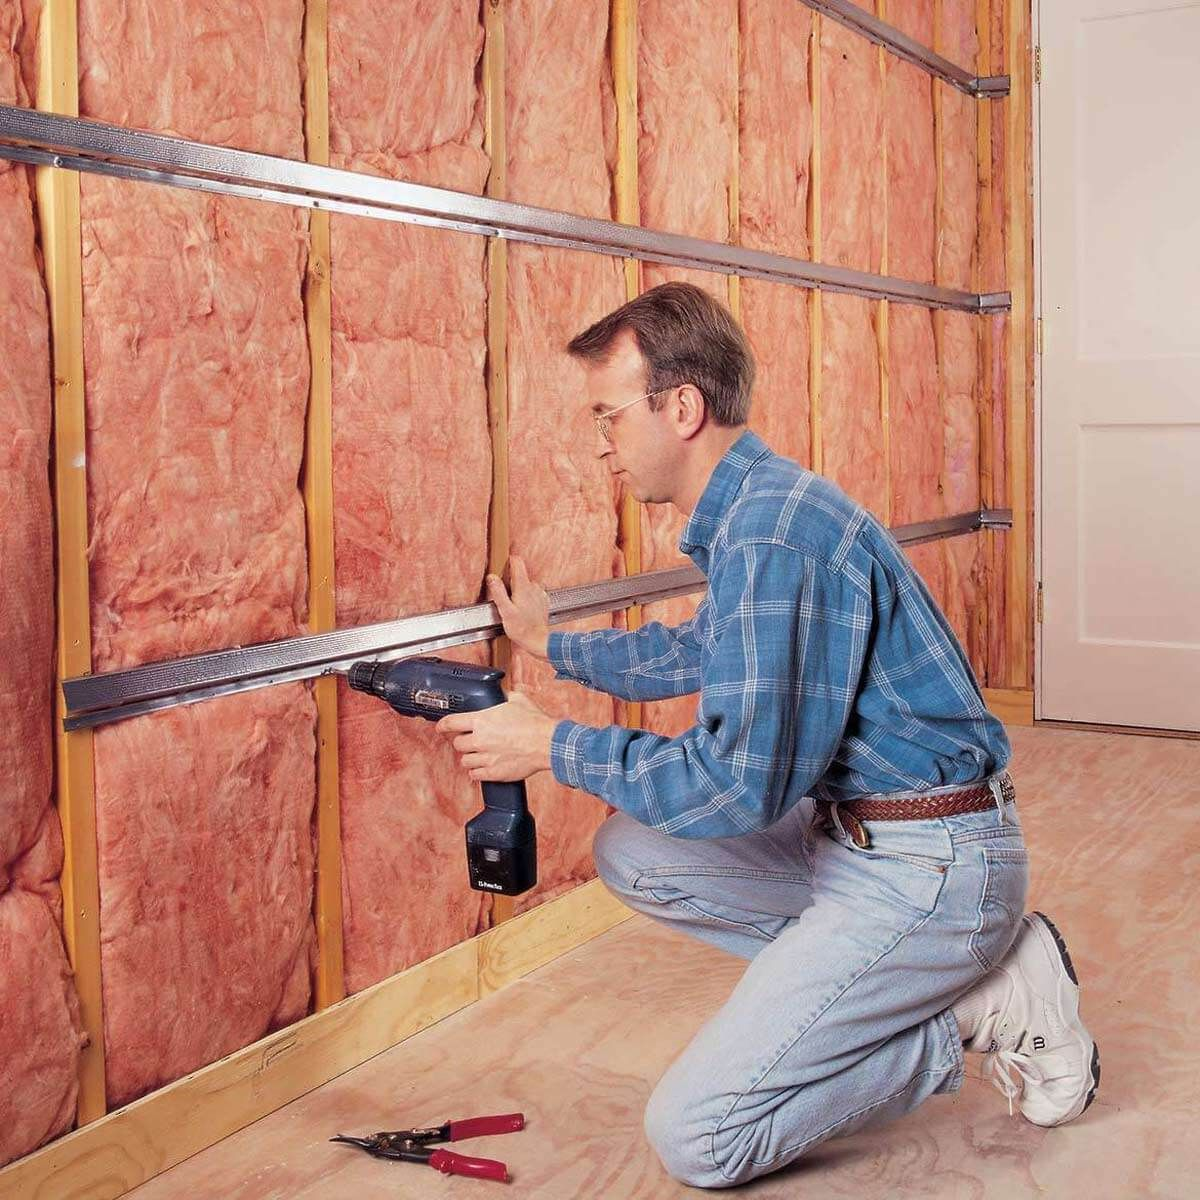 12 Best Ways To Heat A Garage In The Winter Soundproof Room Sound Proofing Soundproofing Walls